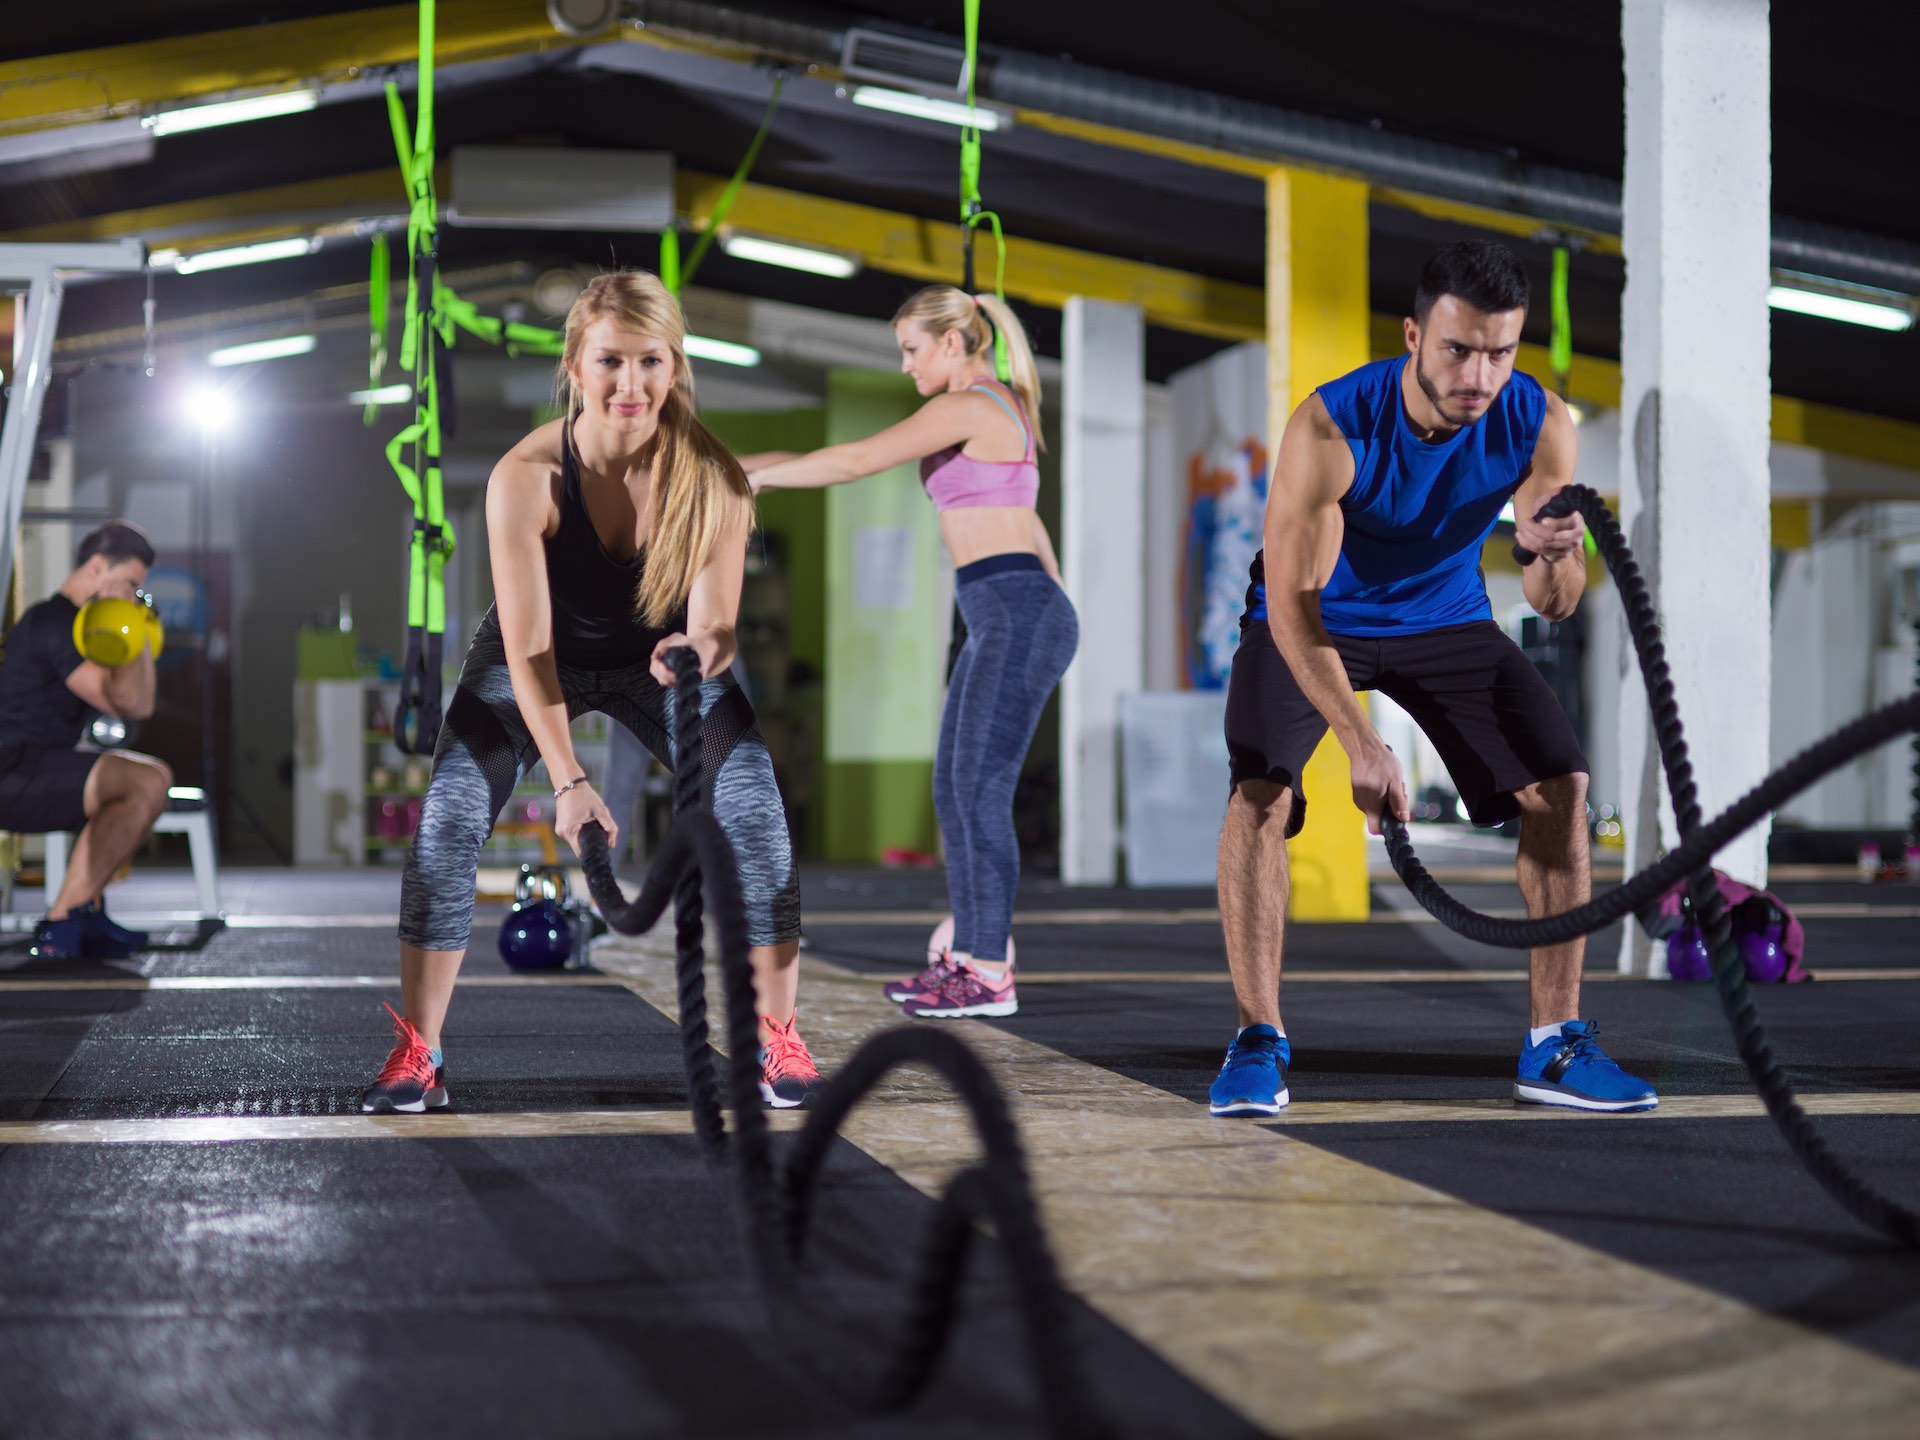 Battle Rope Training ist das perfekte Fitnessprogramm